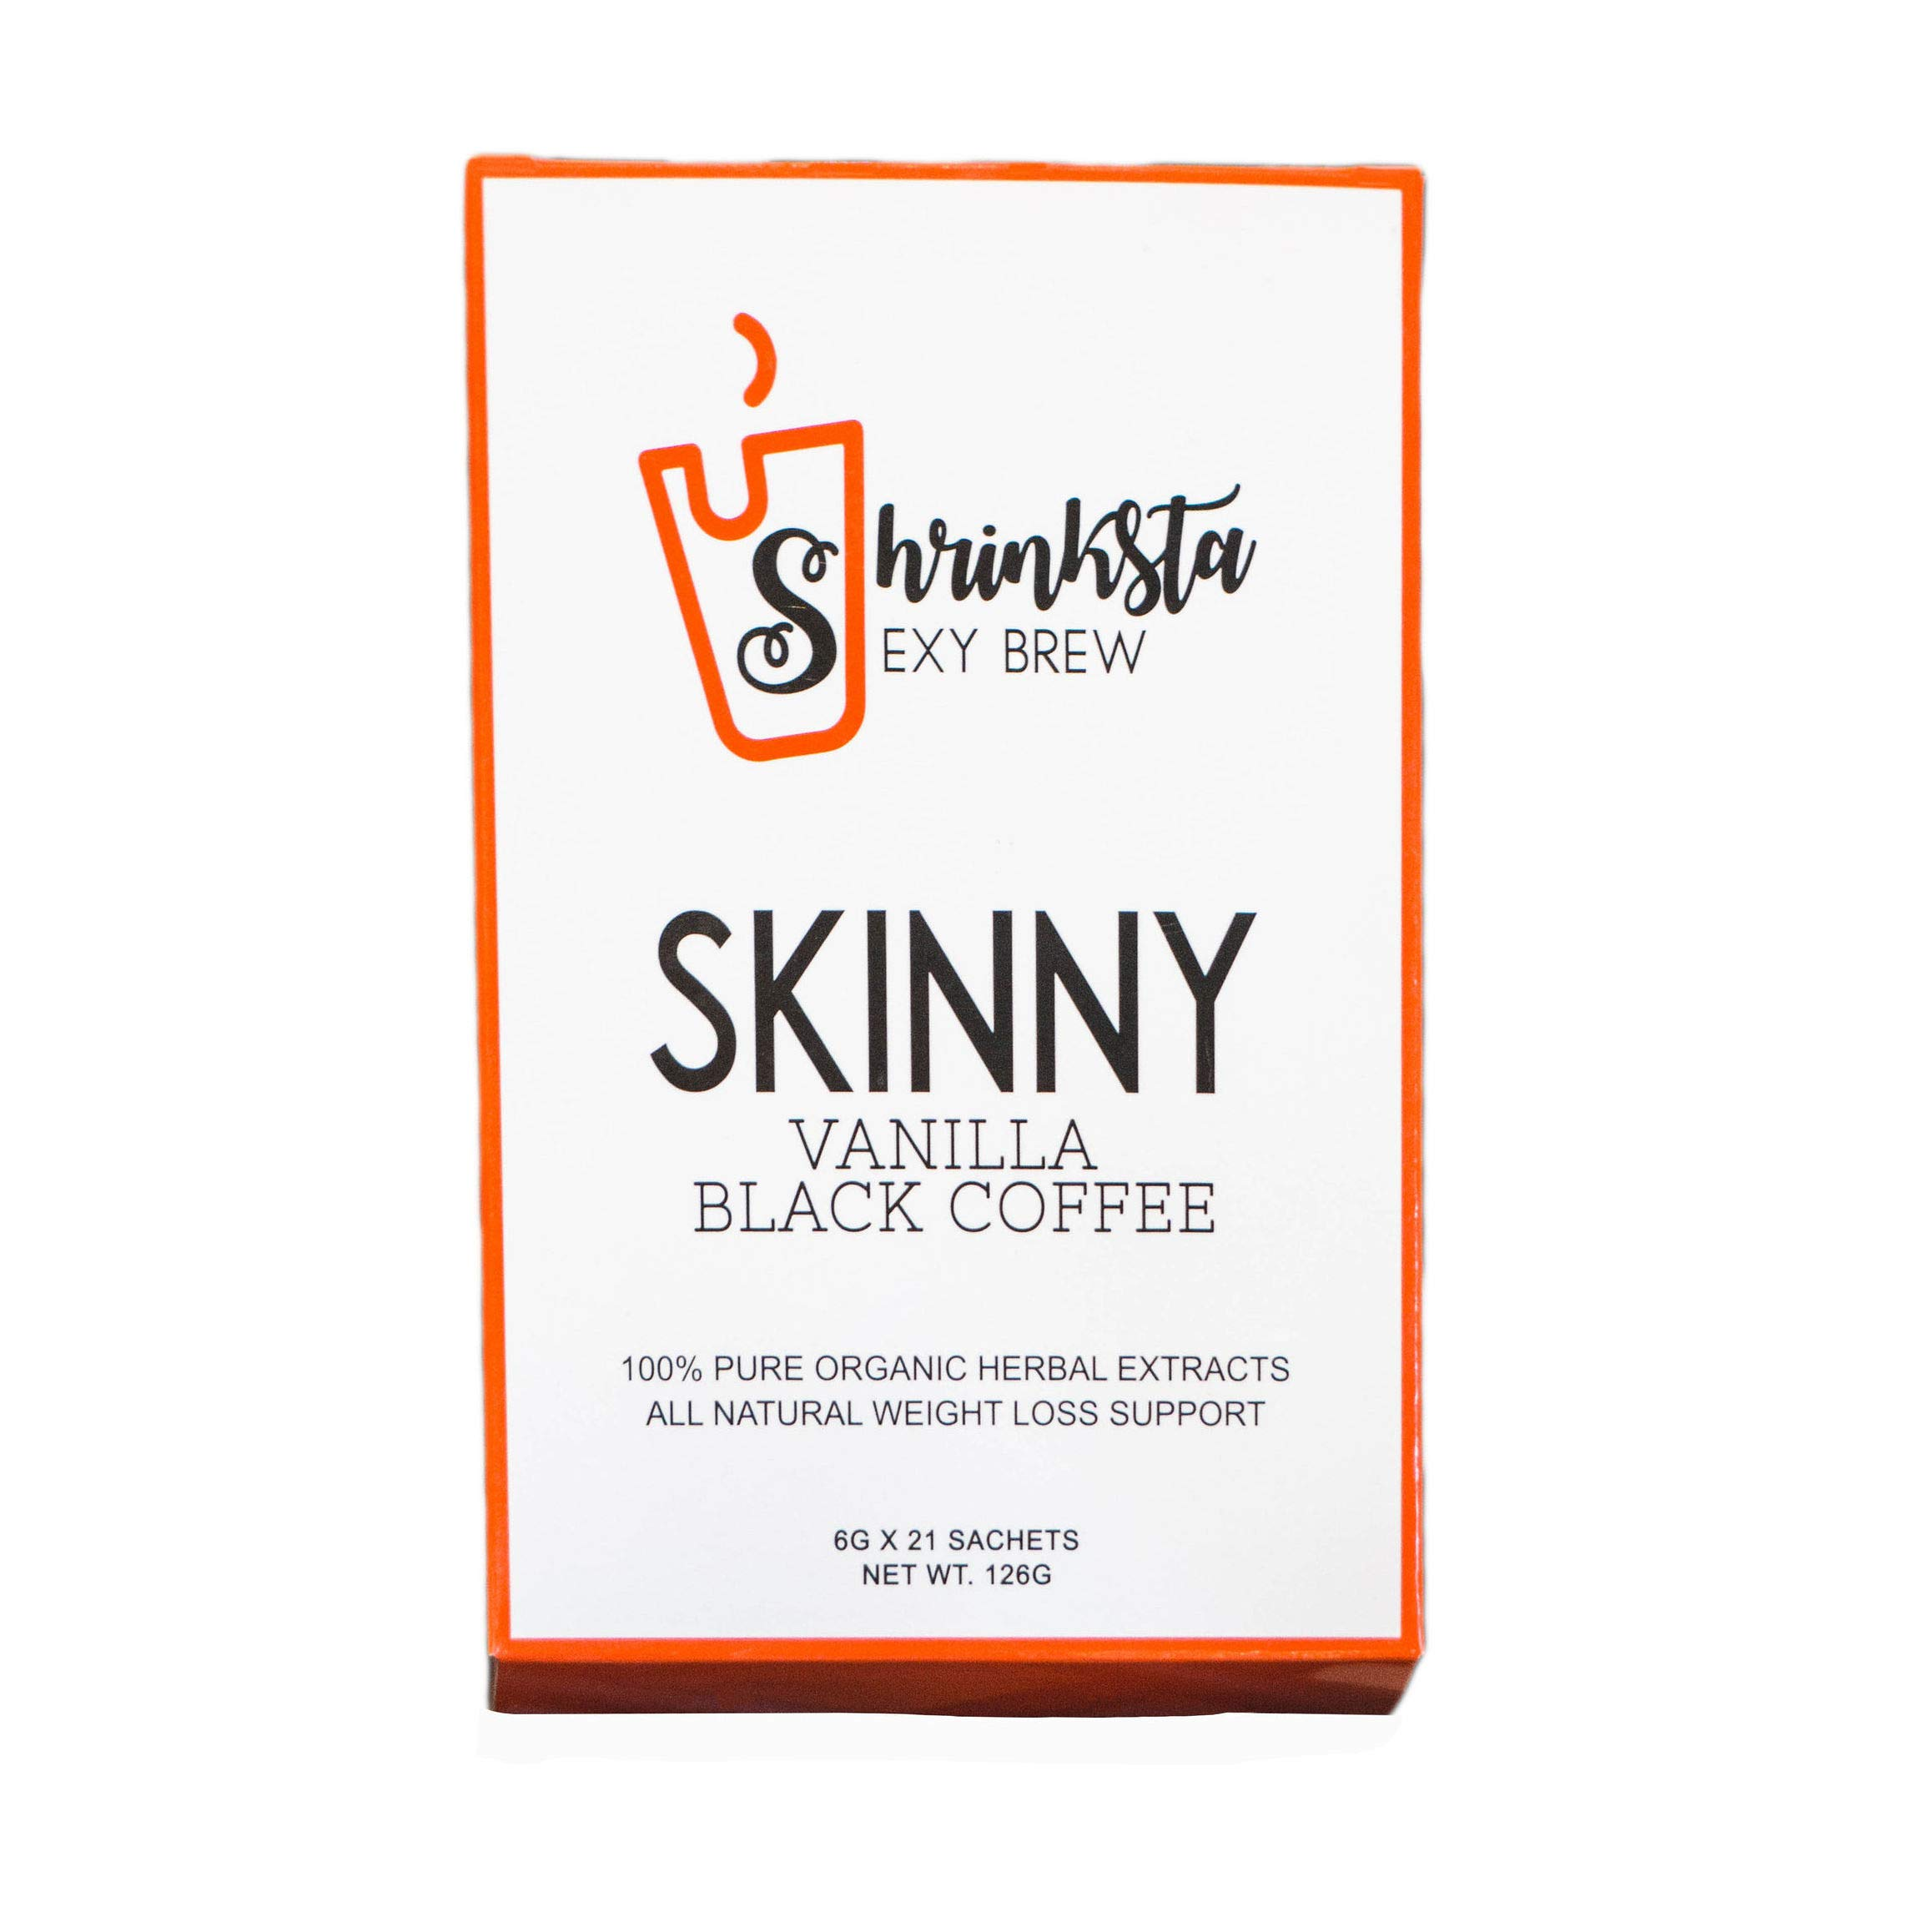 Shrinksta Organic Slimming Weightloss Coffee - All Natural, Vegan, Sugar Free   hCG Diet Approved, Perfect On-The-Go Support   21 Packets in a Box, Vanilla Flavor